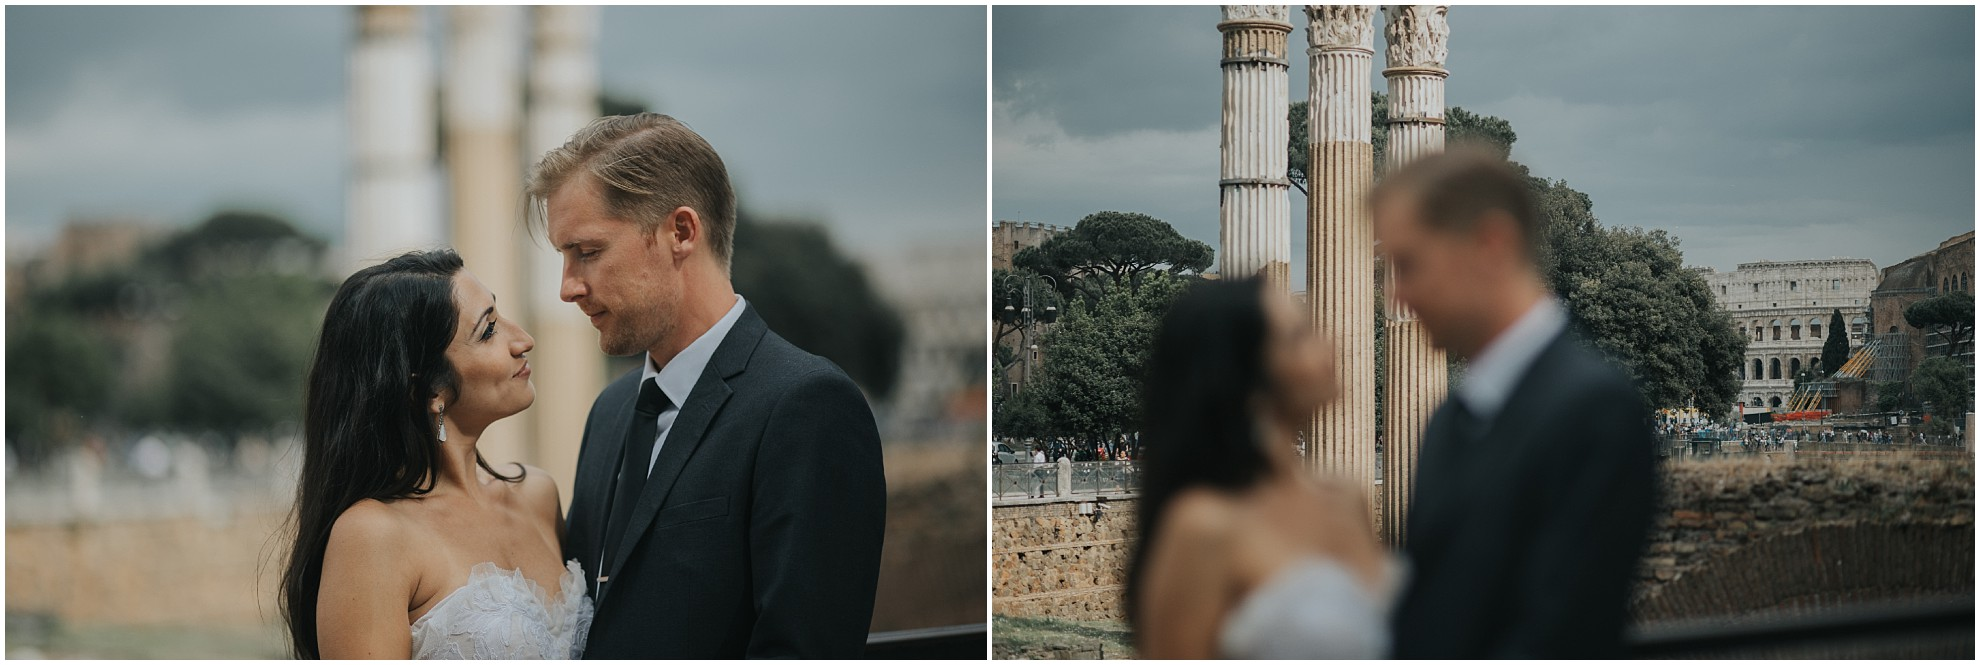 rome-wedding-photographer-0017